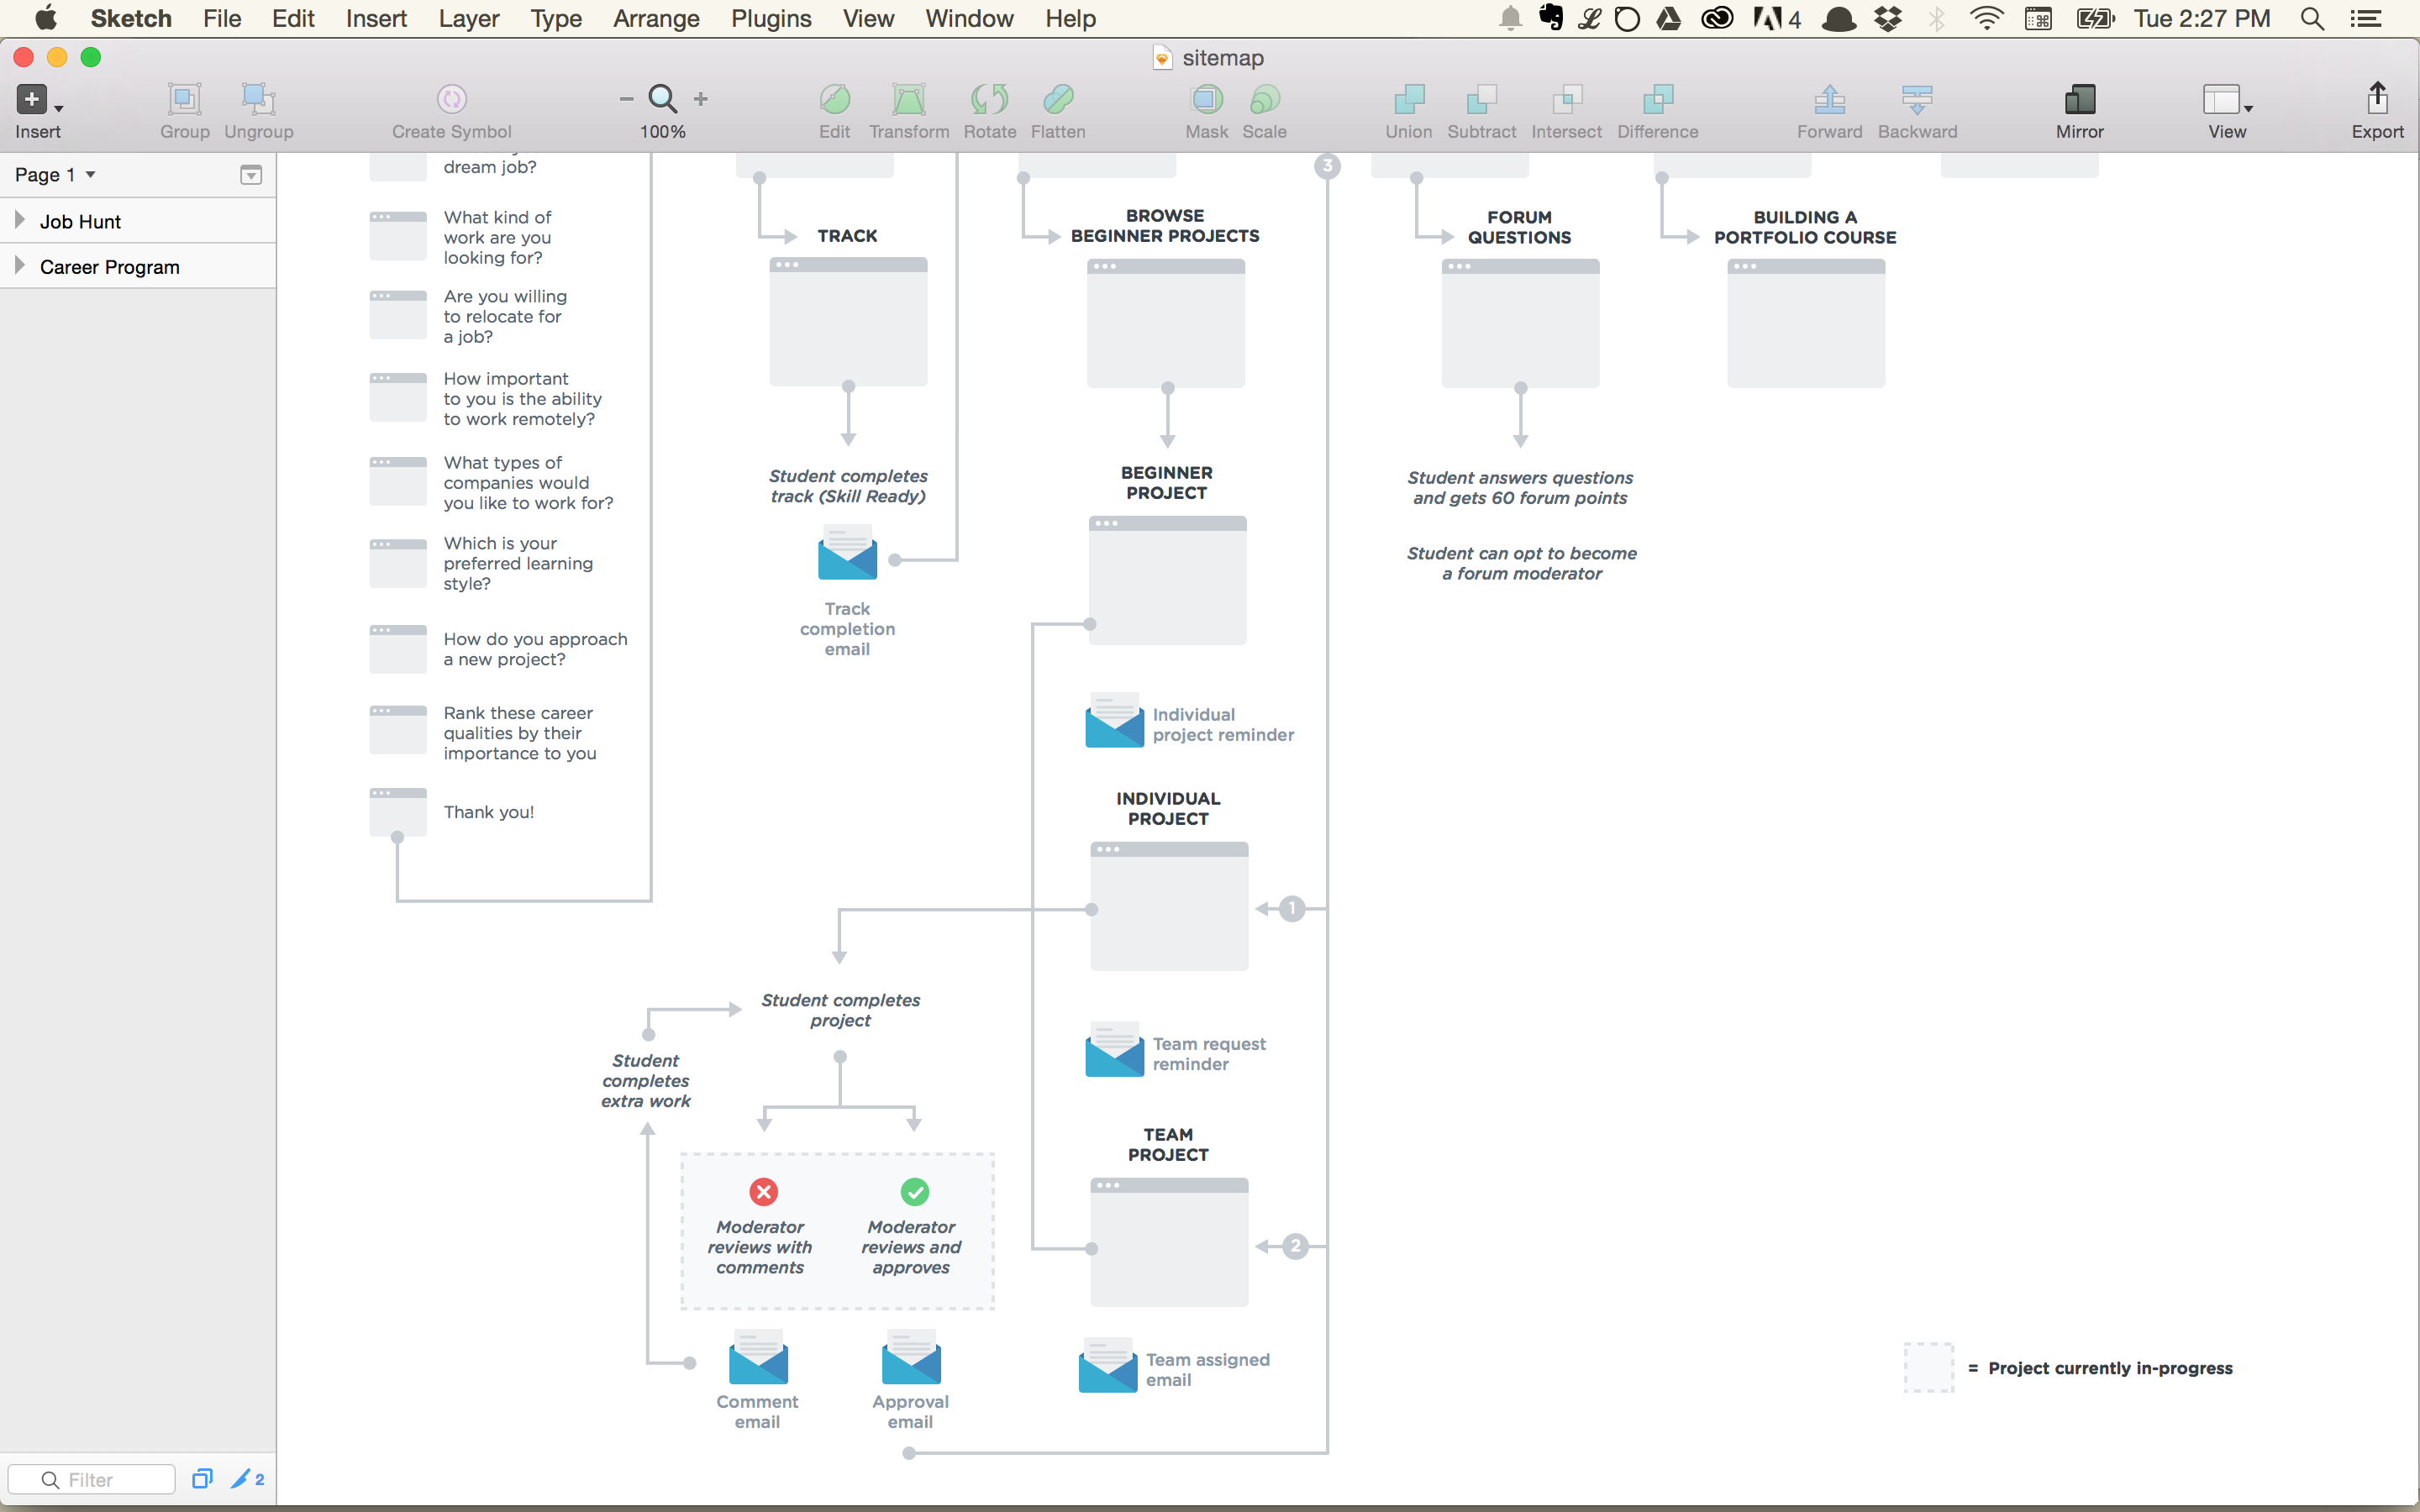 The careers program sitemap in Sketch.